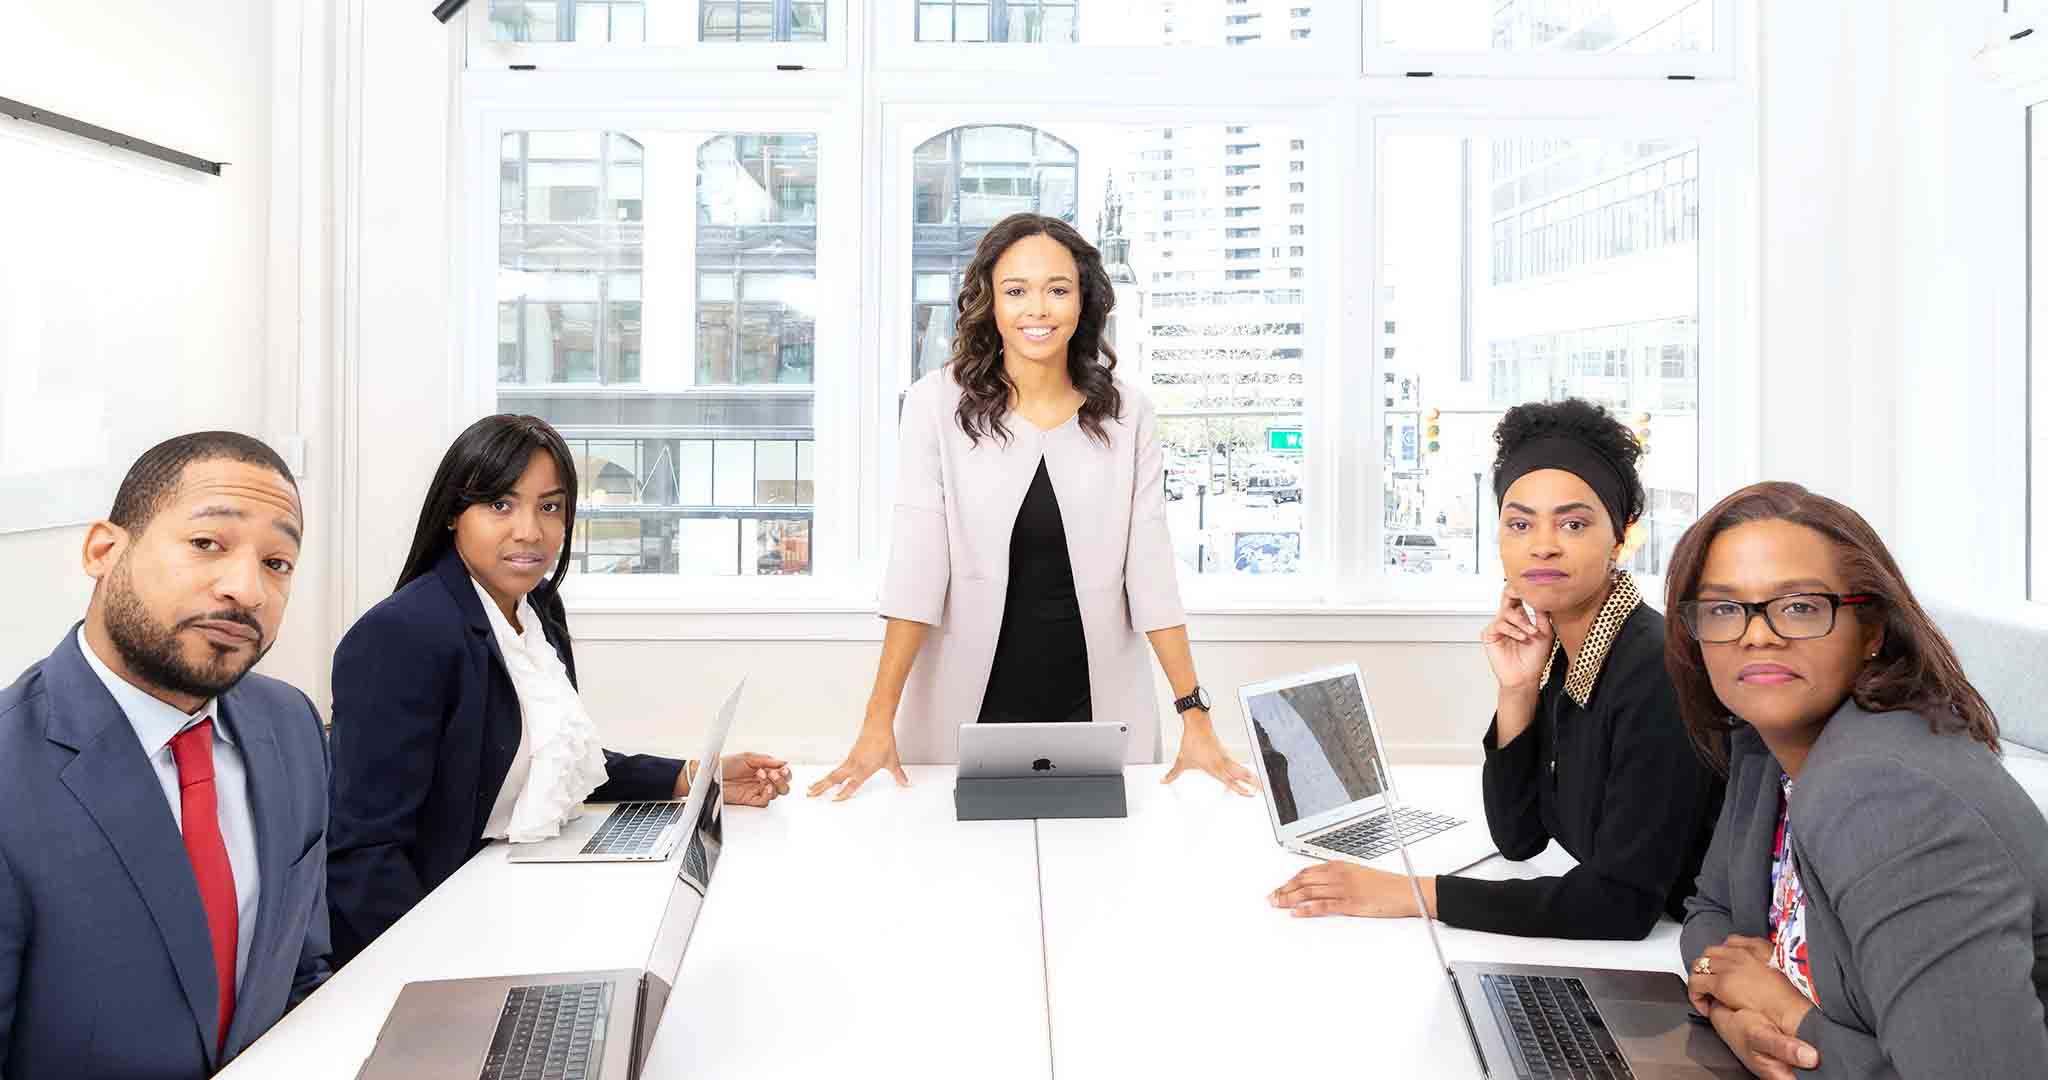 adult communication conference room business stock photos